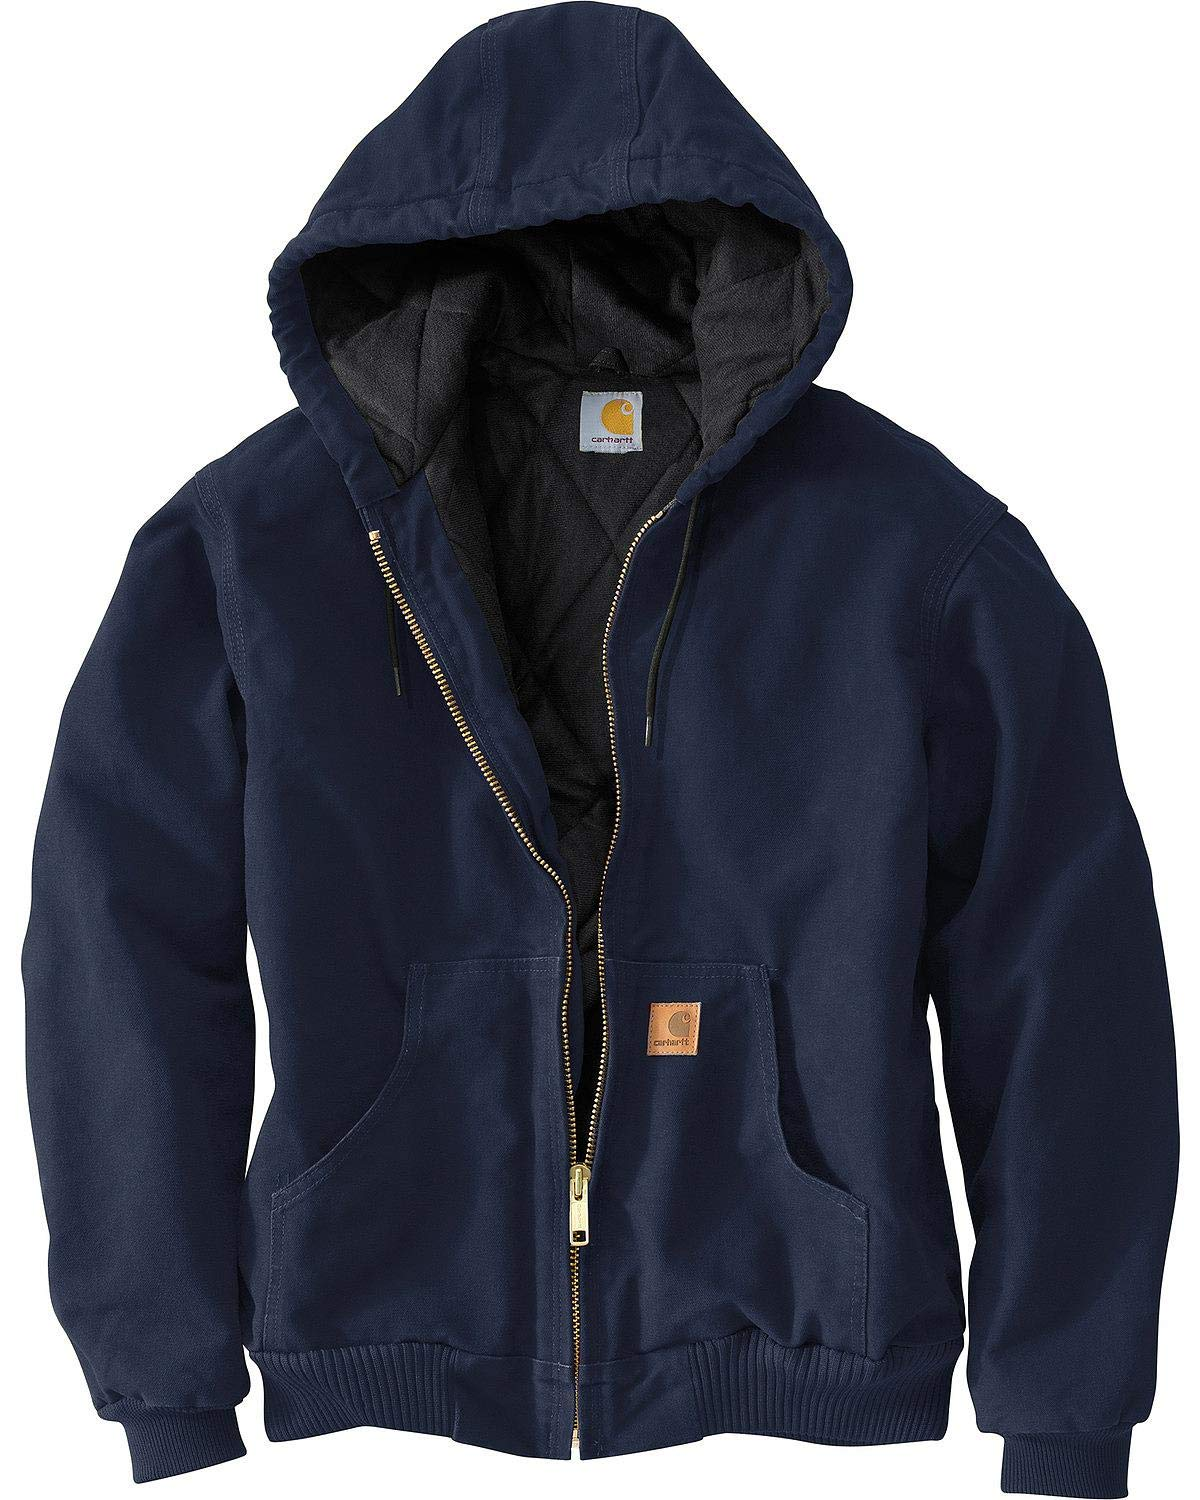 Carhartt Men's Sandstone Active Jacket,Midnight,Large by Carhartt